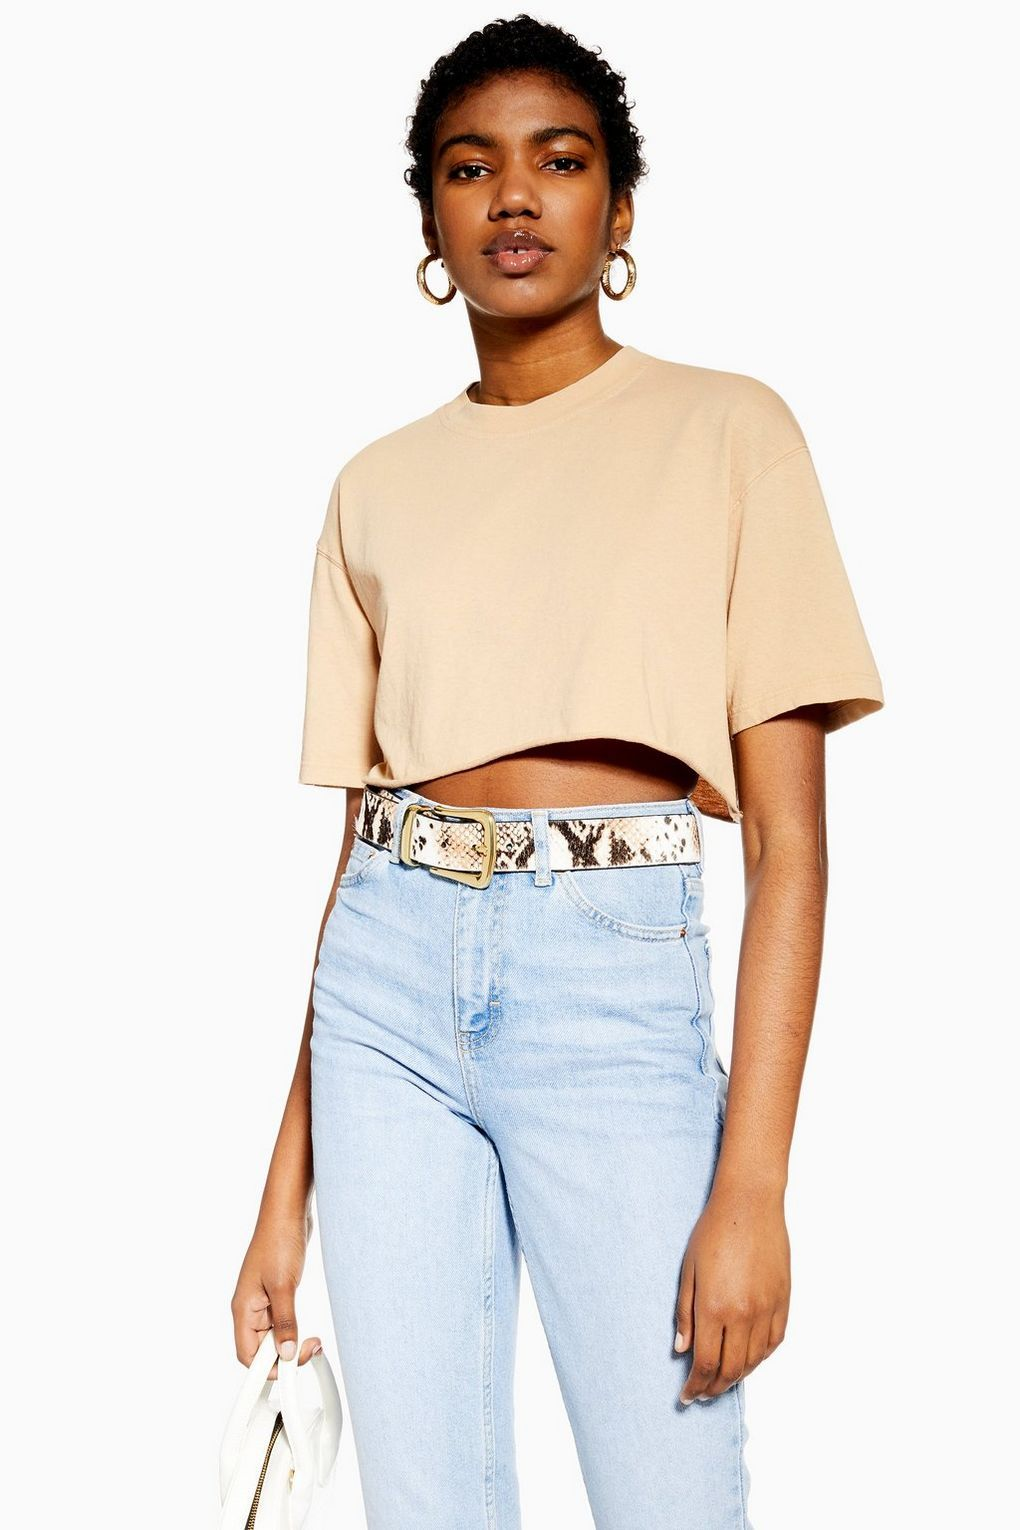 """Crop tops help me define my waist without having to use a belt or tuck in a shirt."""